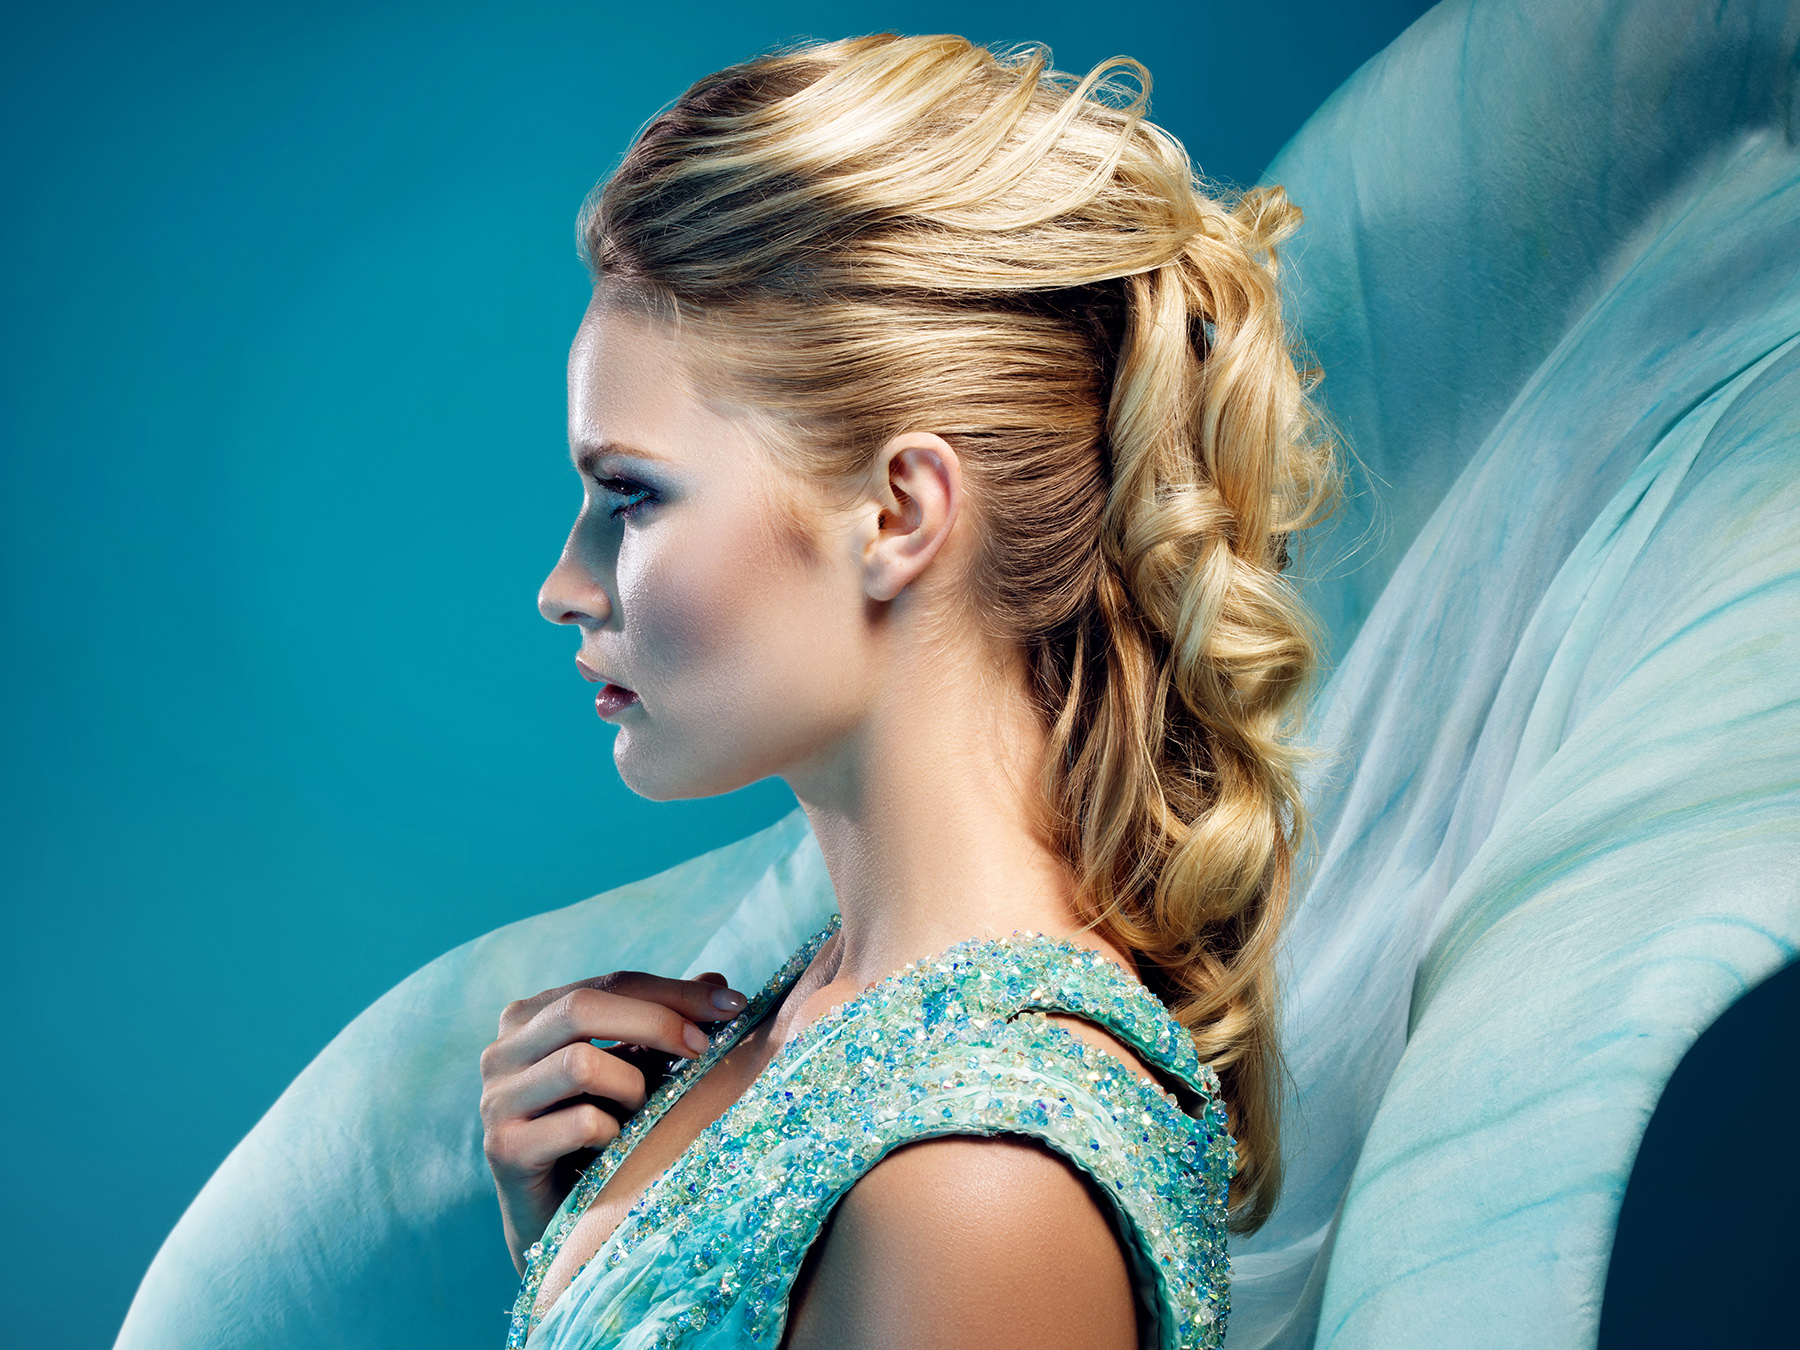 Marco Ribbe Fashion Photography Fotograf Heilbronn haute couture turquoise prom dress